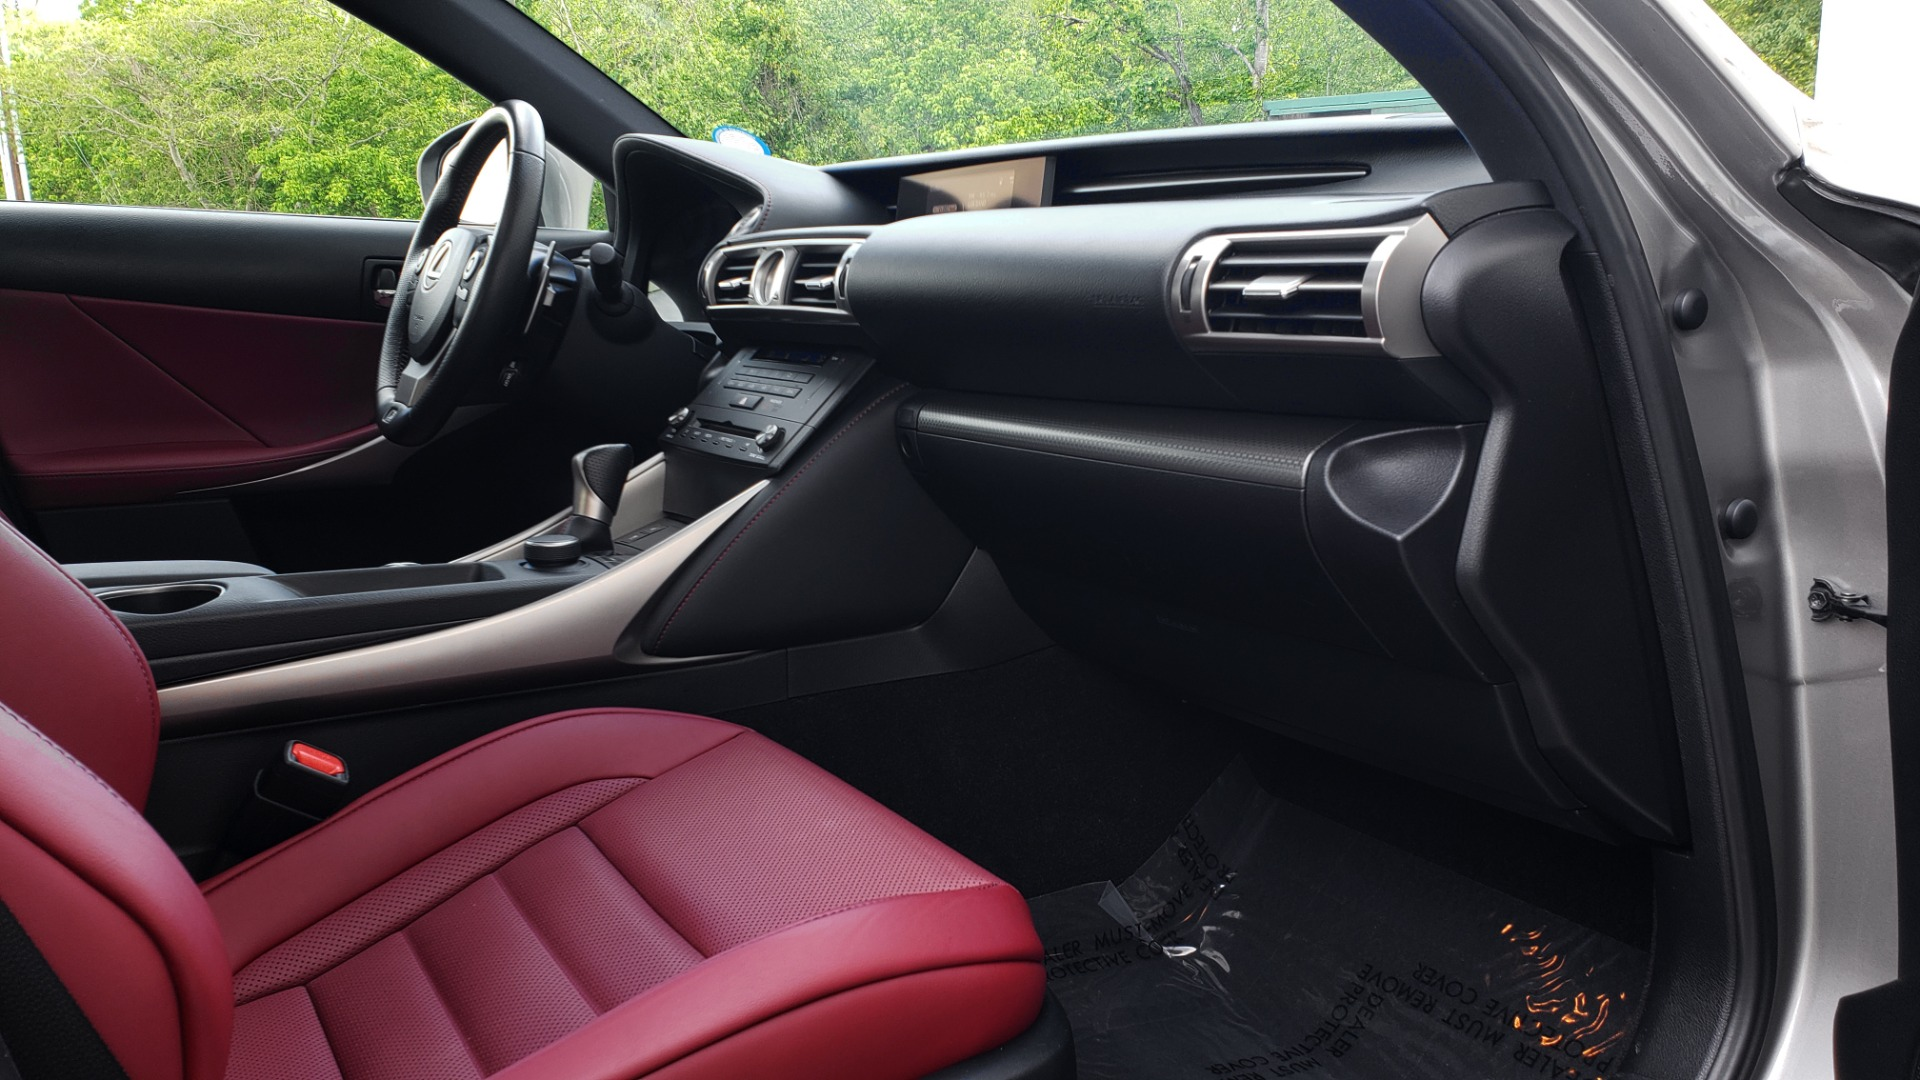 Used 2016 Lexus IS 300 F-SPORT / SUNROOF / BSM / VENTILATED SEATS / REARVIEW for sale Sold at Formula Imports in Charlotte NC 28227 63